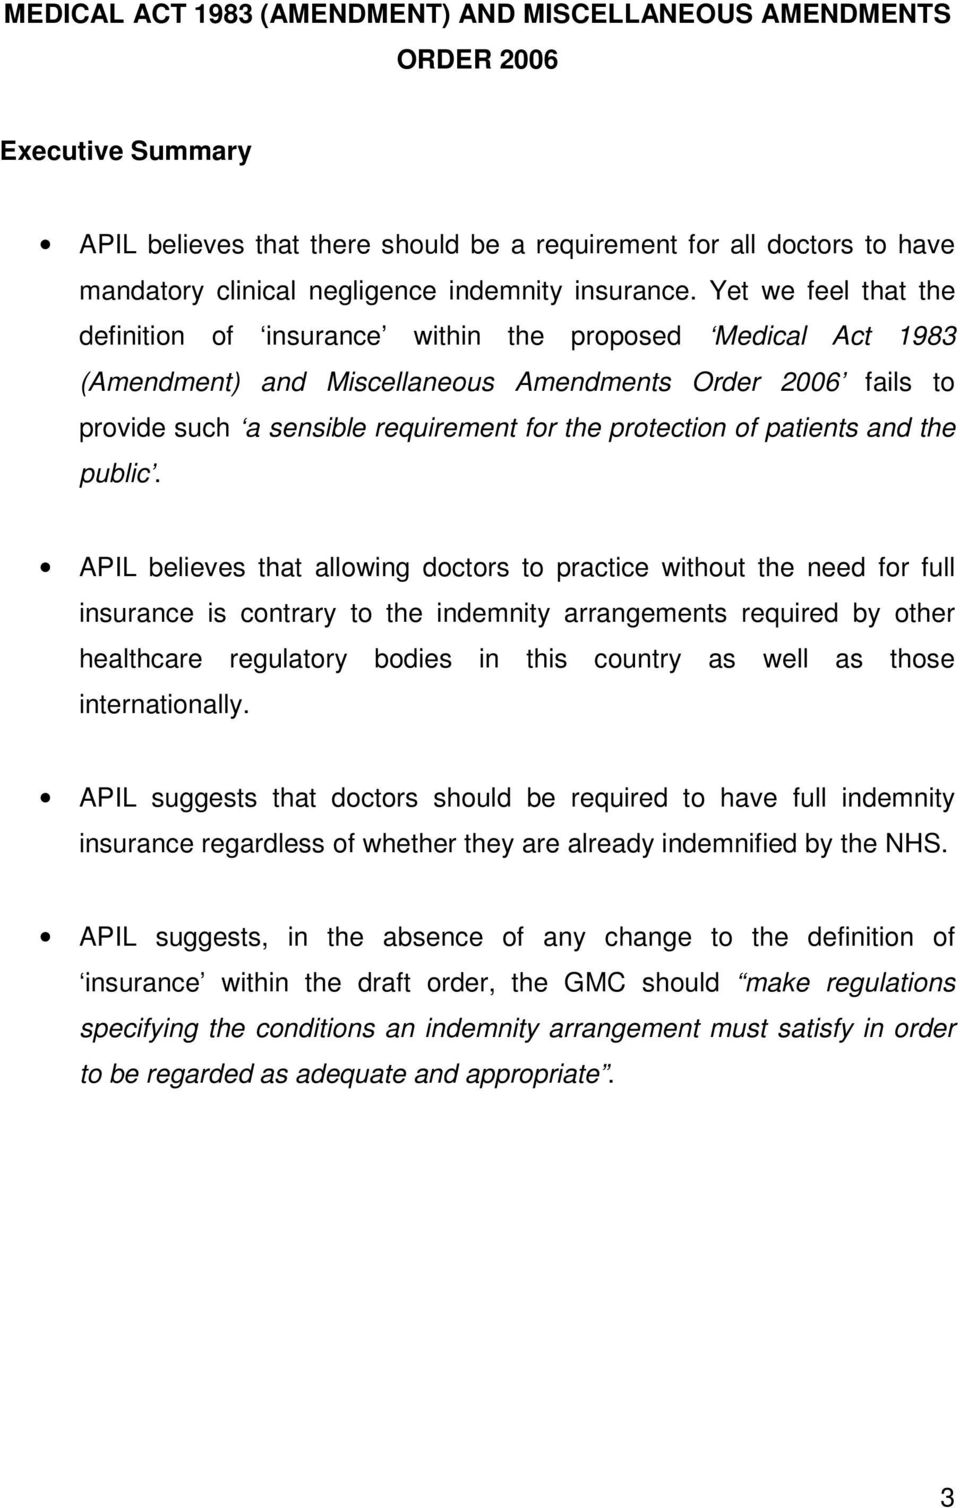 Yet we feel that the definition of insurance within the proposed Medical Act 1983 (Amendment) and Miscellaneous Amendments Order 2006 fails to provide such a sensible requirement for the protection